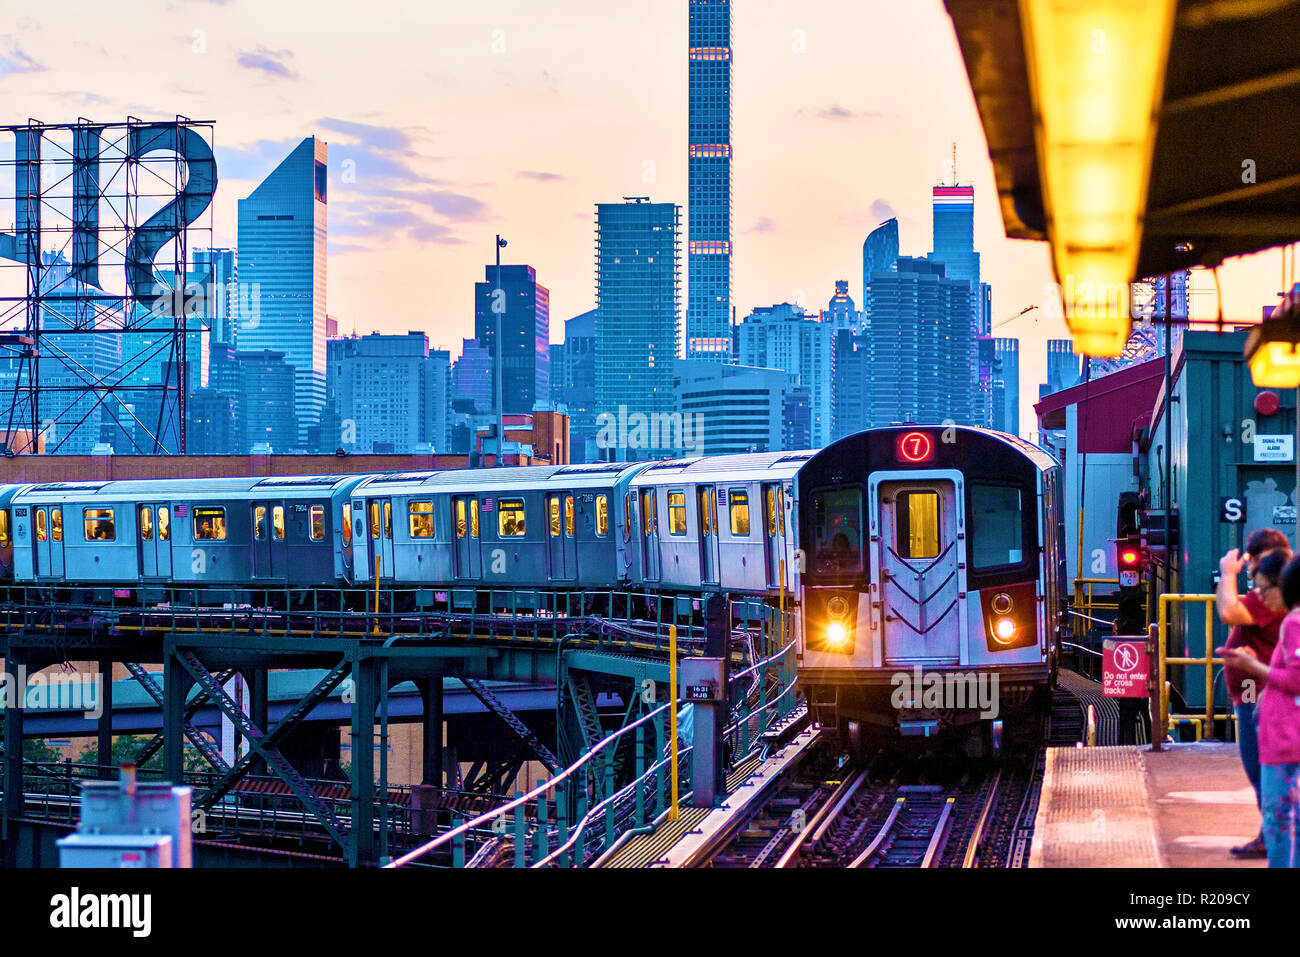 New York Subway Train No. 7 Long Island City, Queens, Queensboro Plaza, New York City - Stock Image